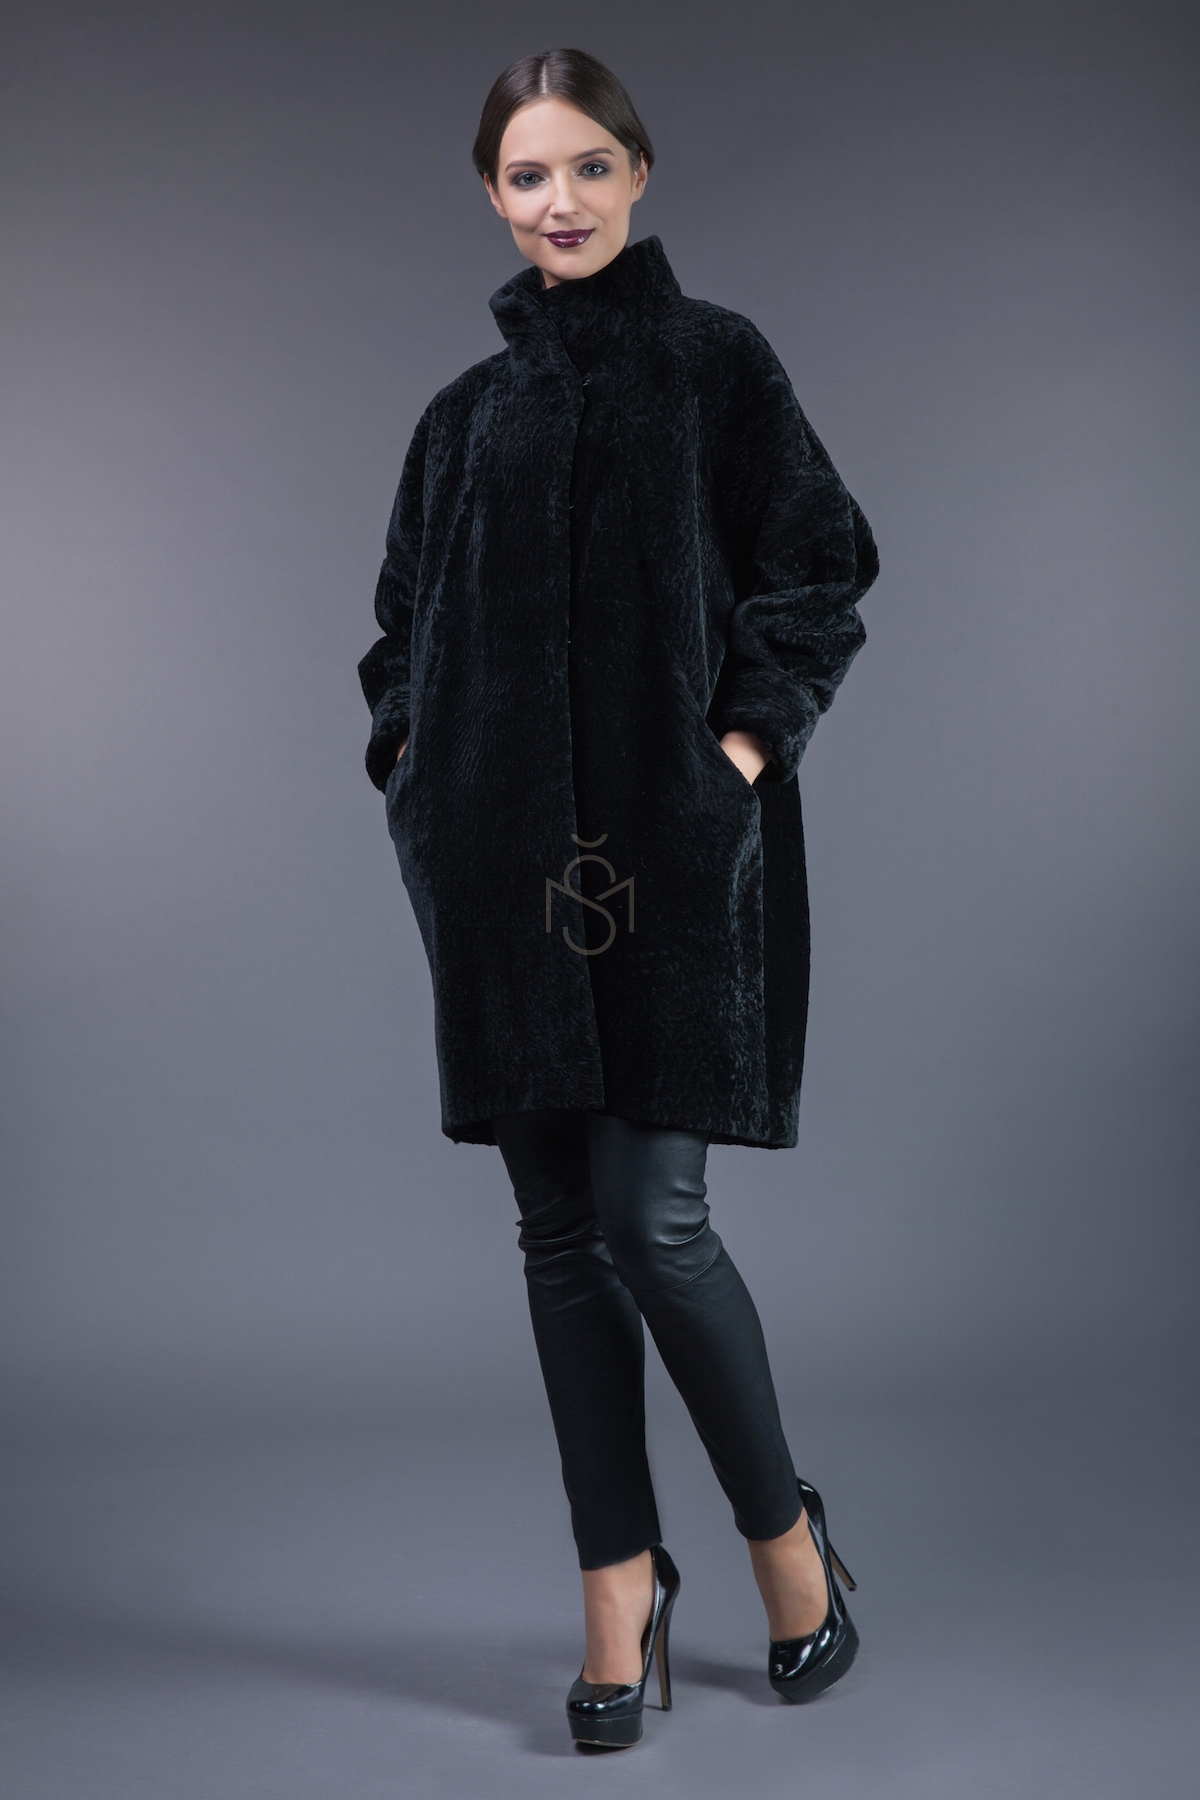 Mutton sheepskin coat